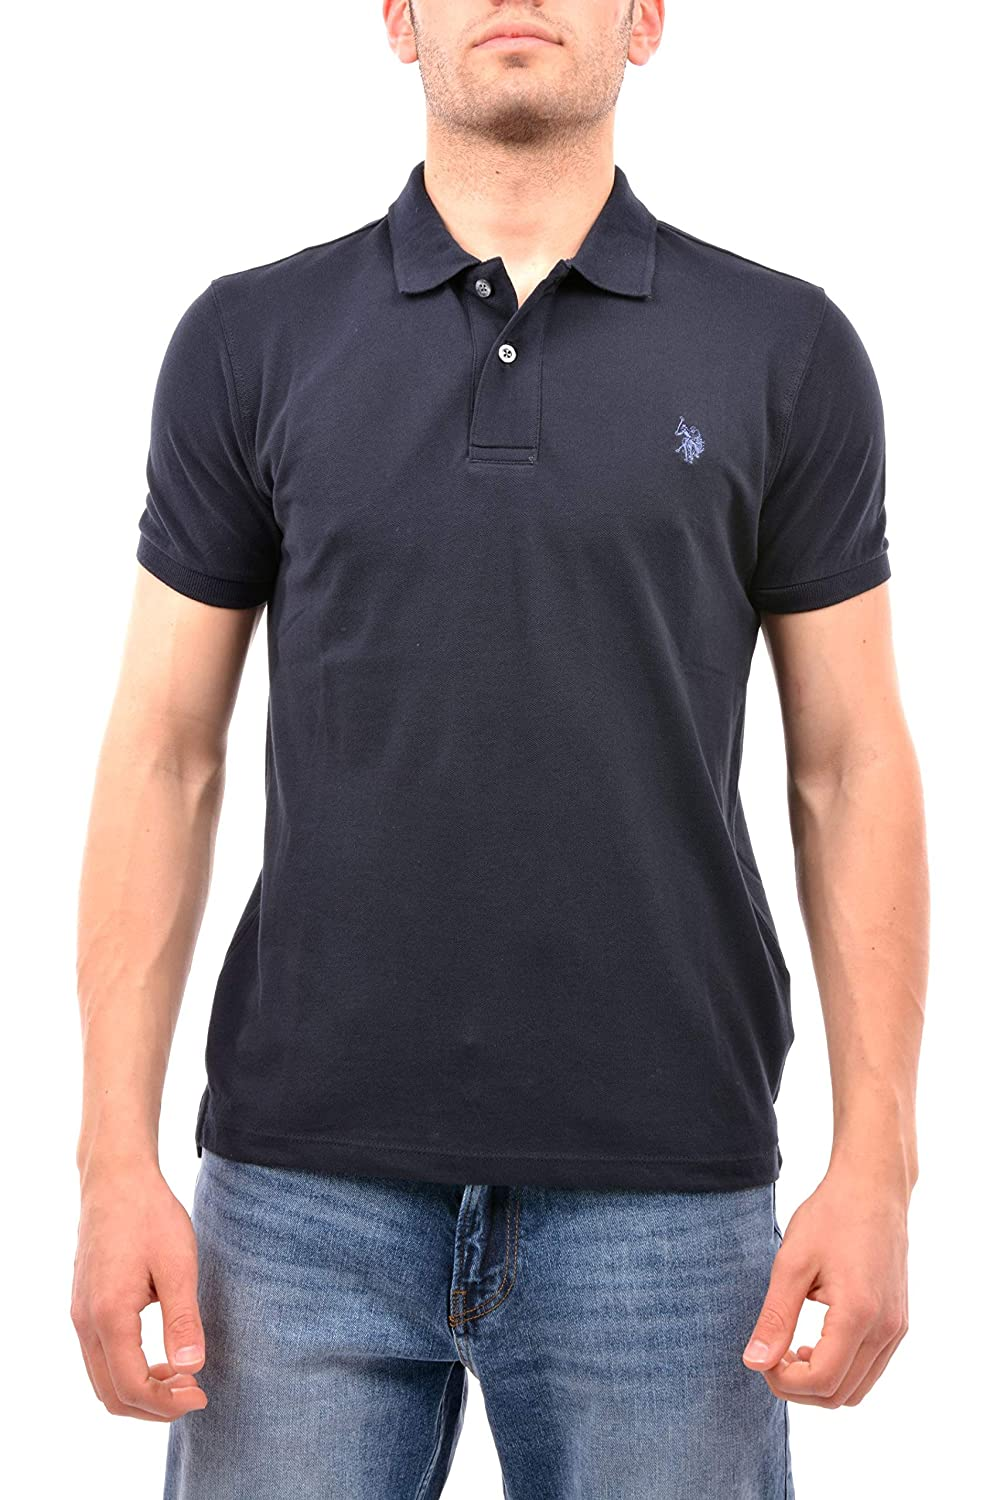 Polo UOMO U.S. Polo 51244-41029 Primavera/Estate M: Amazon.es ...